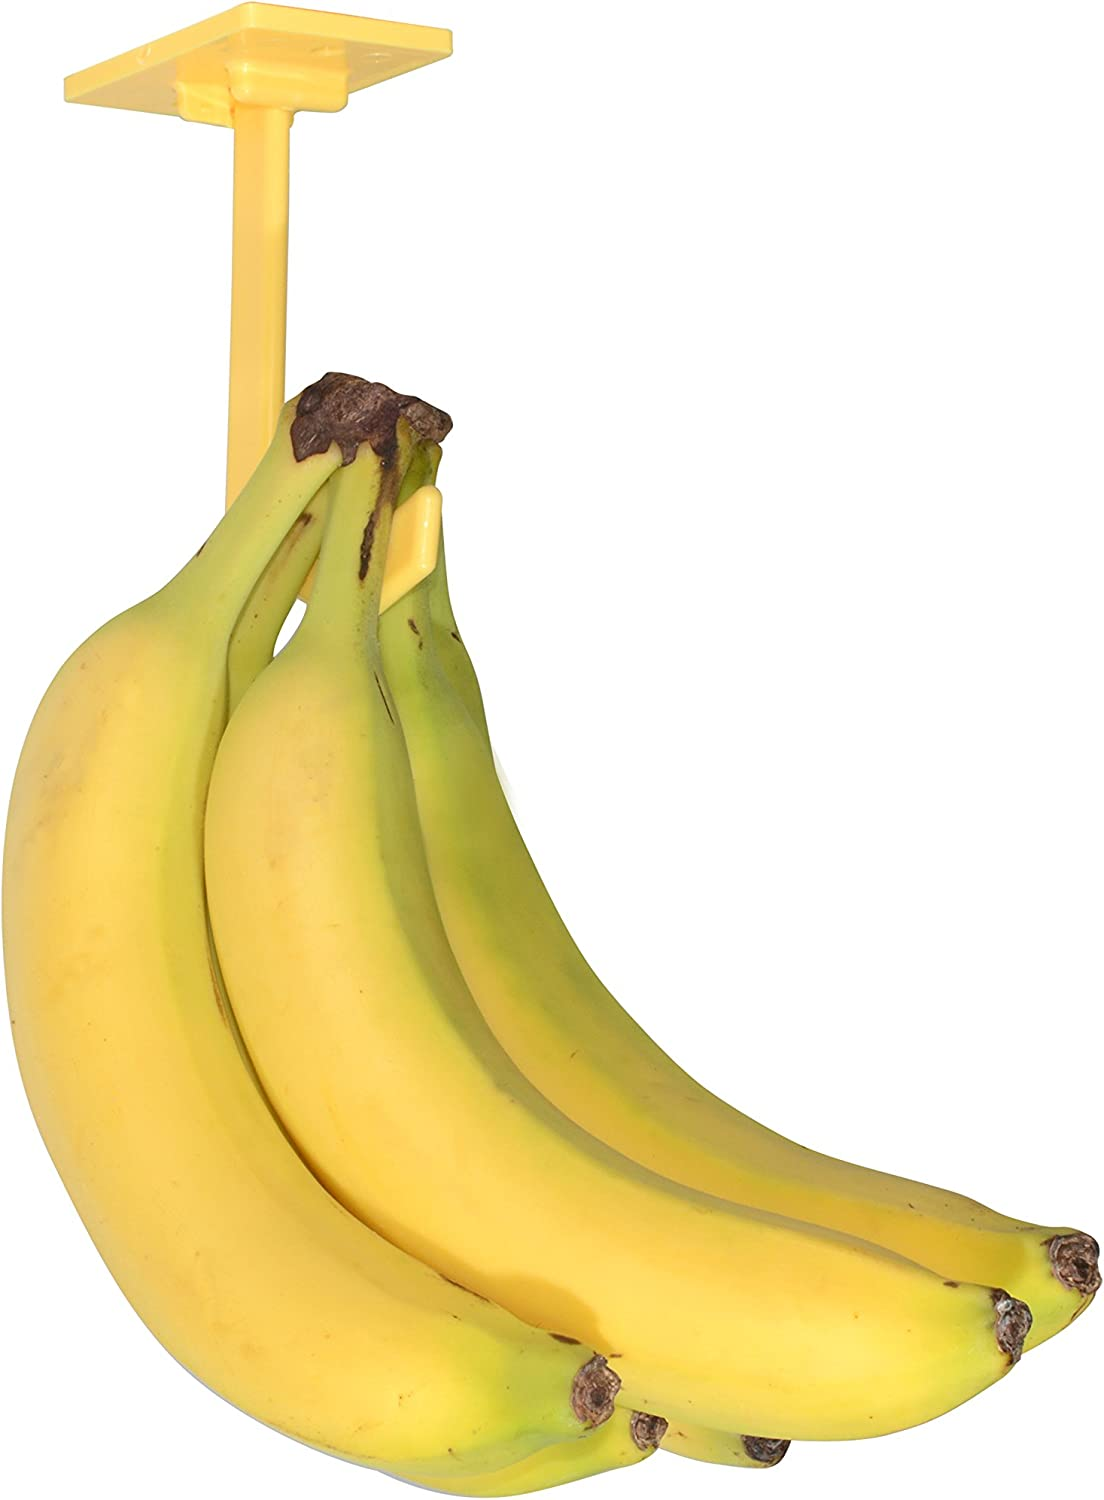 Banana Hanger – Under Cabinet Hook for Bananas or Other Lightweight Kitchen Items. Hook Folds-up When Not in Use. Self-adhesive and Pre-drilled Holes (Screws Provided!) Keep Bananas Fresh.(Yellow)